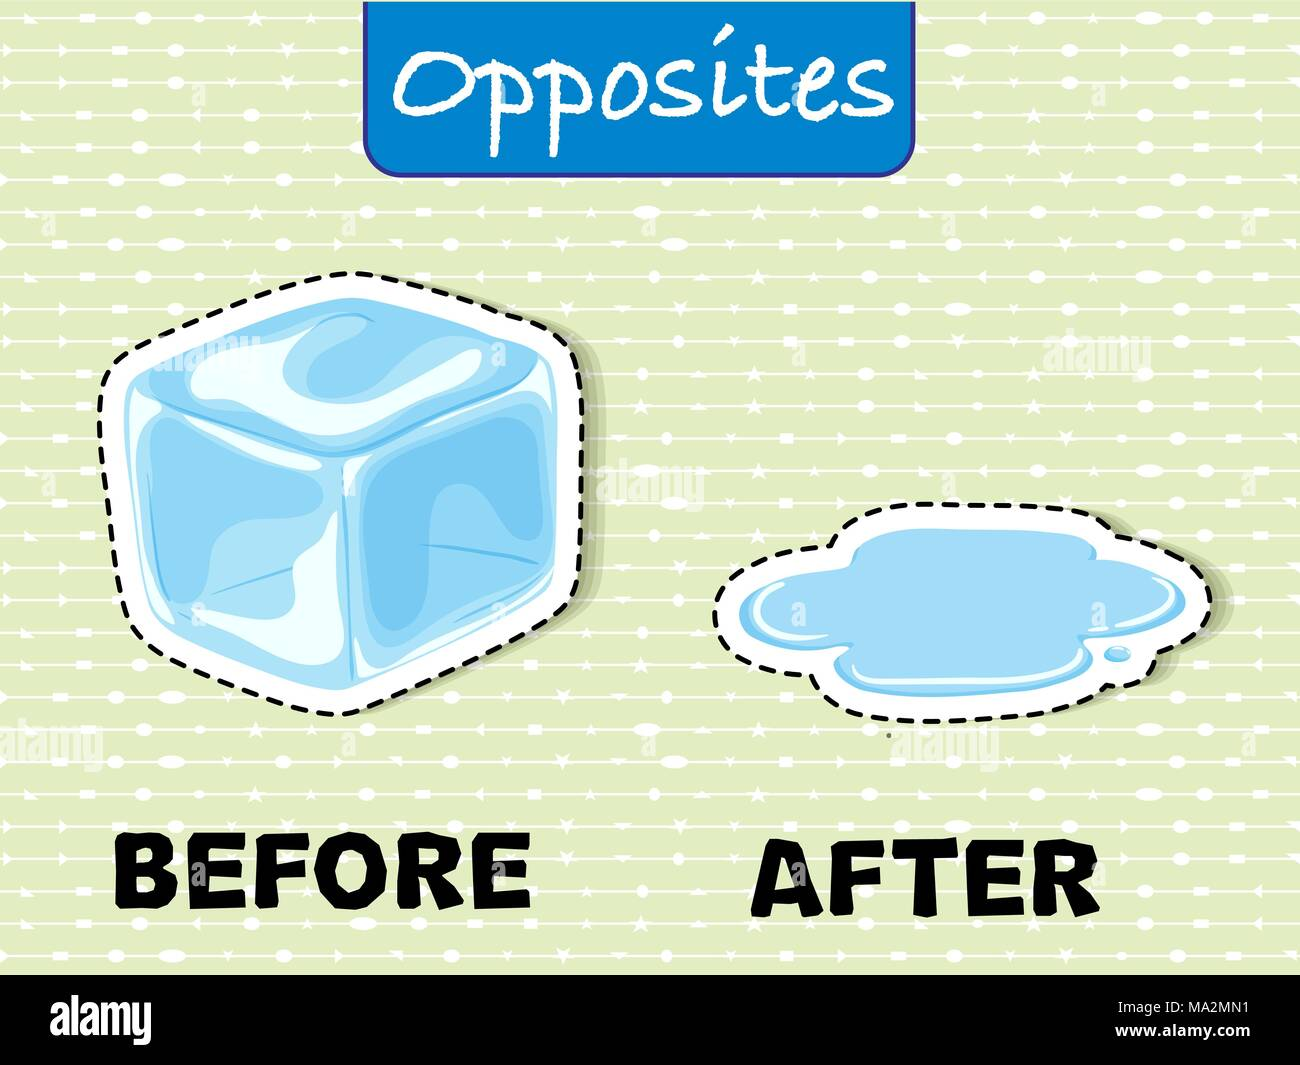 Opposite words for before and after illustration Stock Vector Art ...